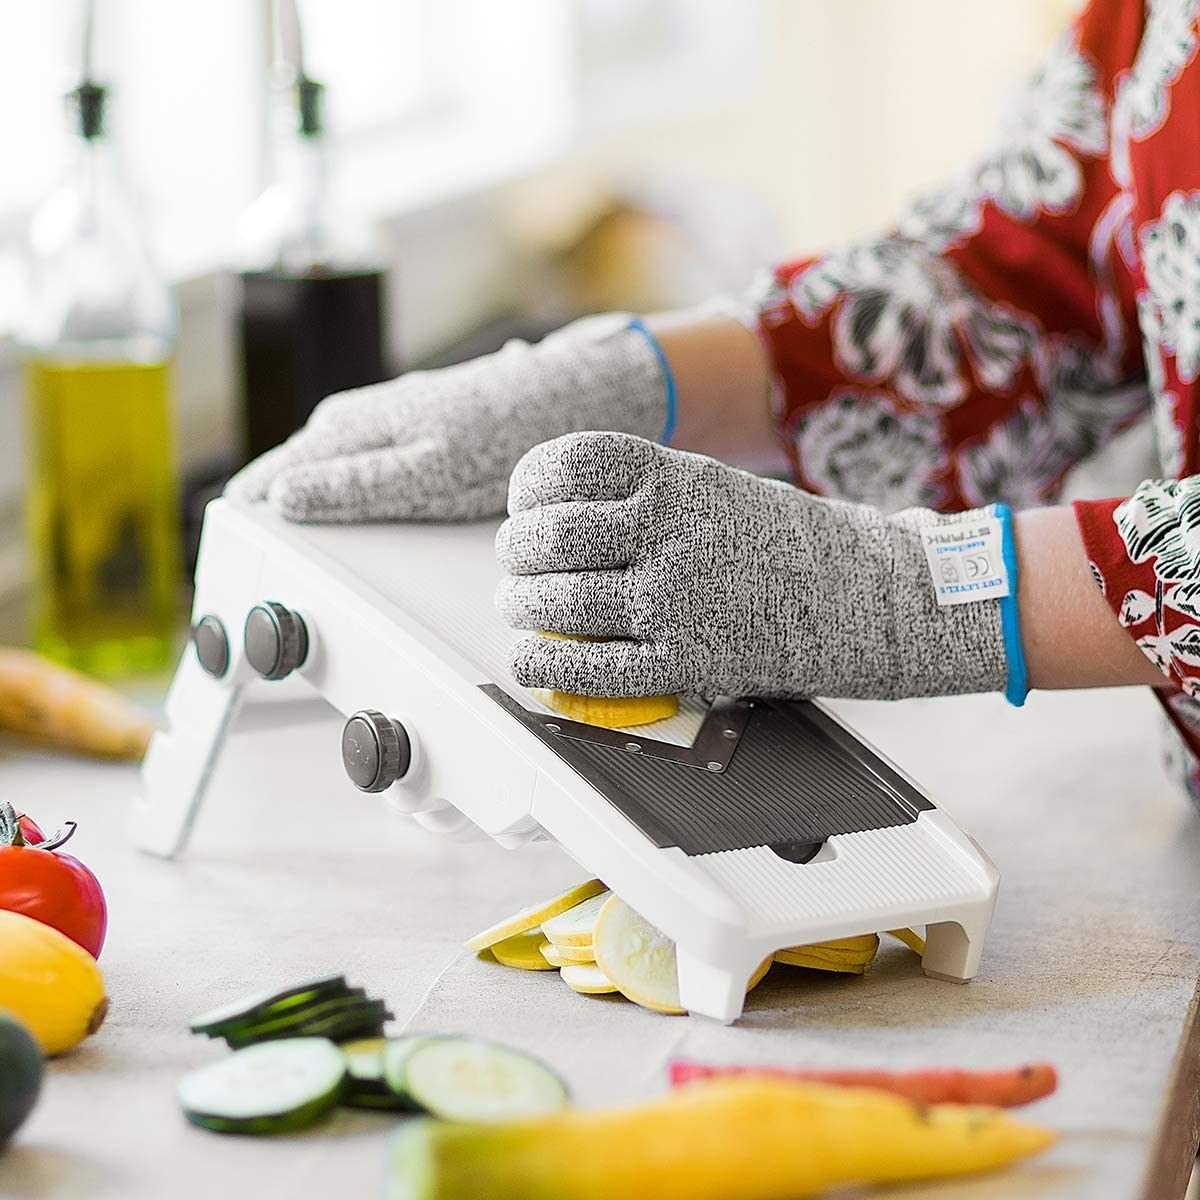 person wearing the gloves and using a mandolin cutter